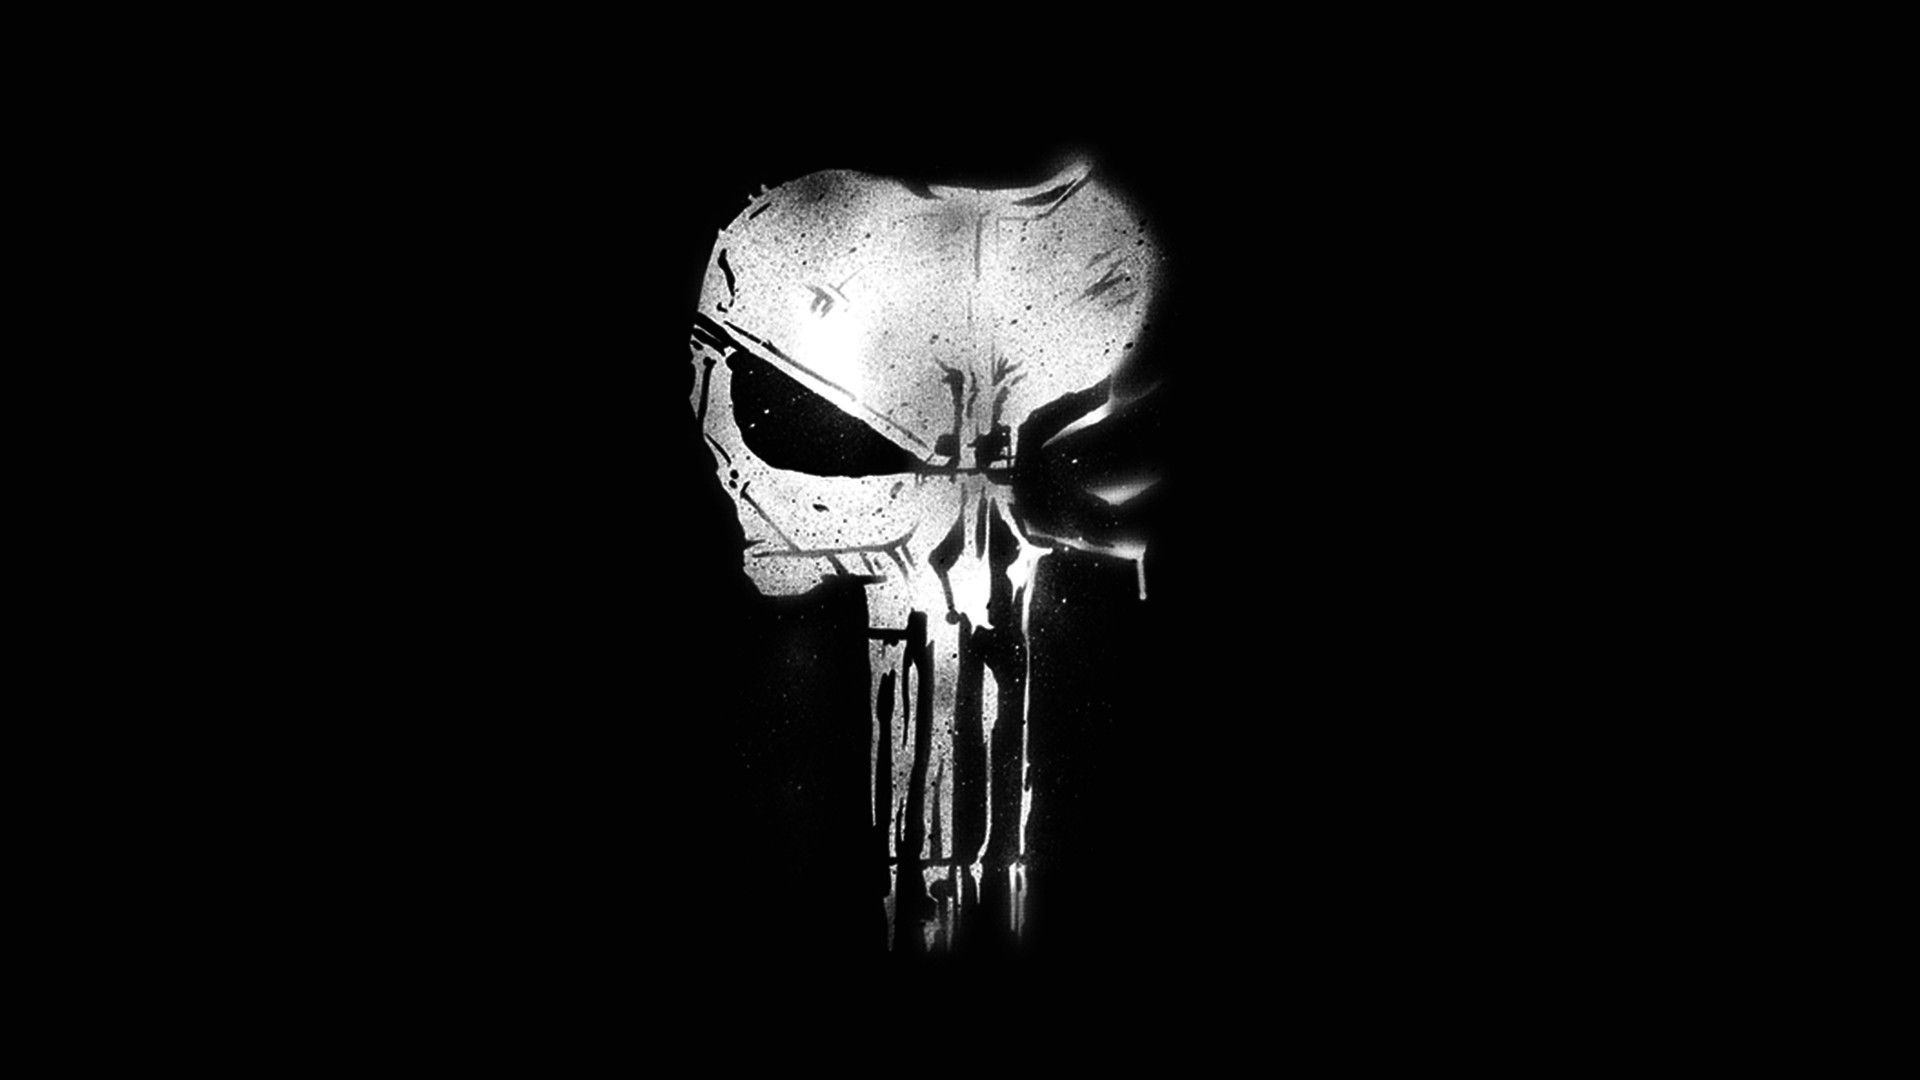 Res 1920x1080, The Punisher Wallpapers 19 1920 X 1080